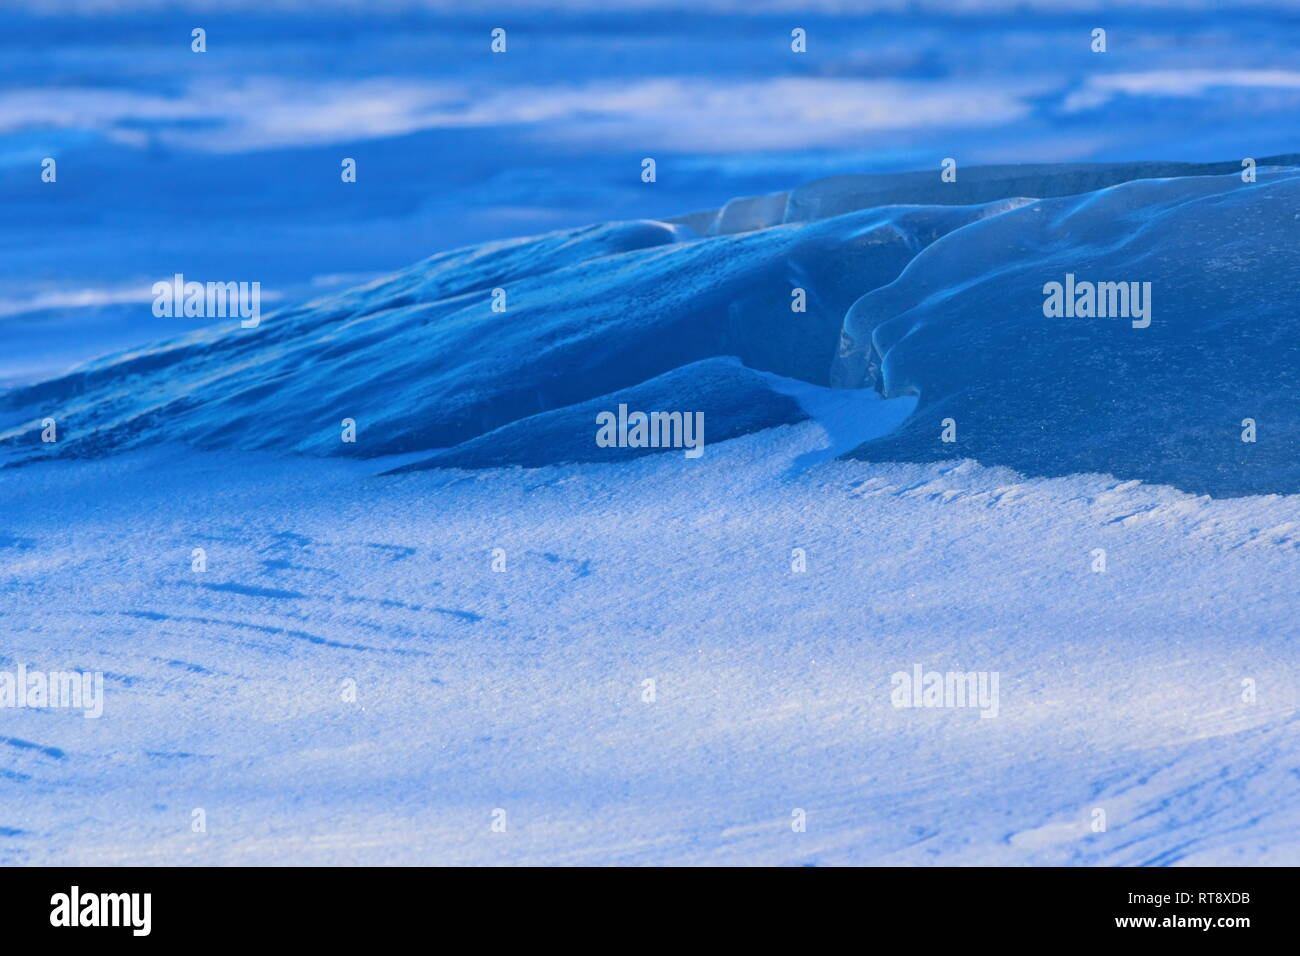 The wind has formed patterns in the snow covering a frozen lake. Stock Photo